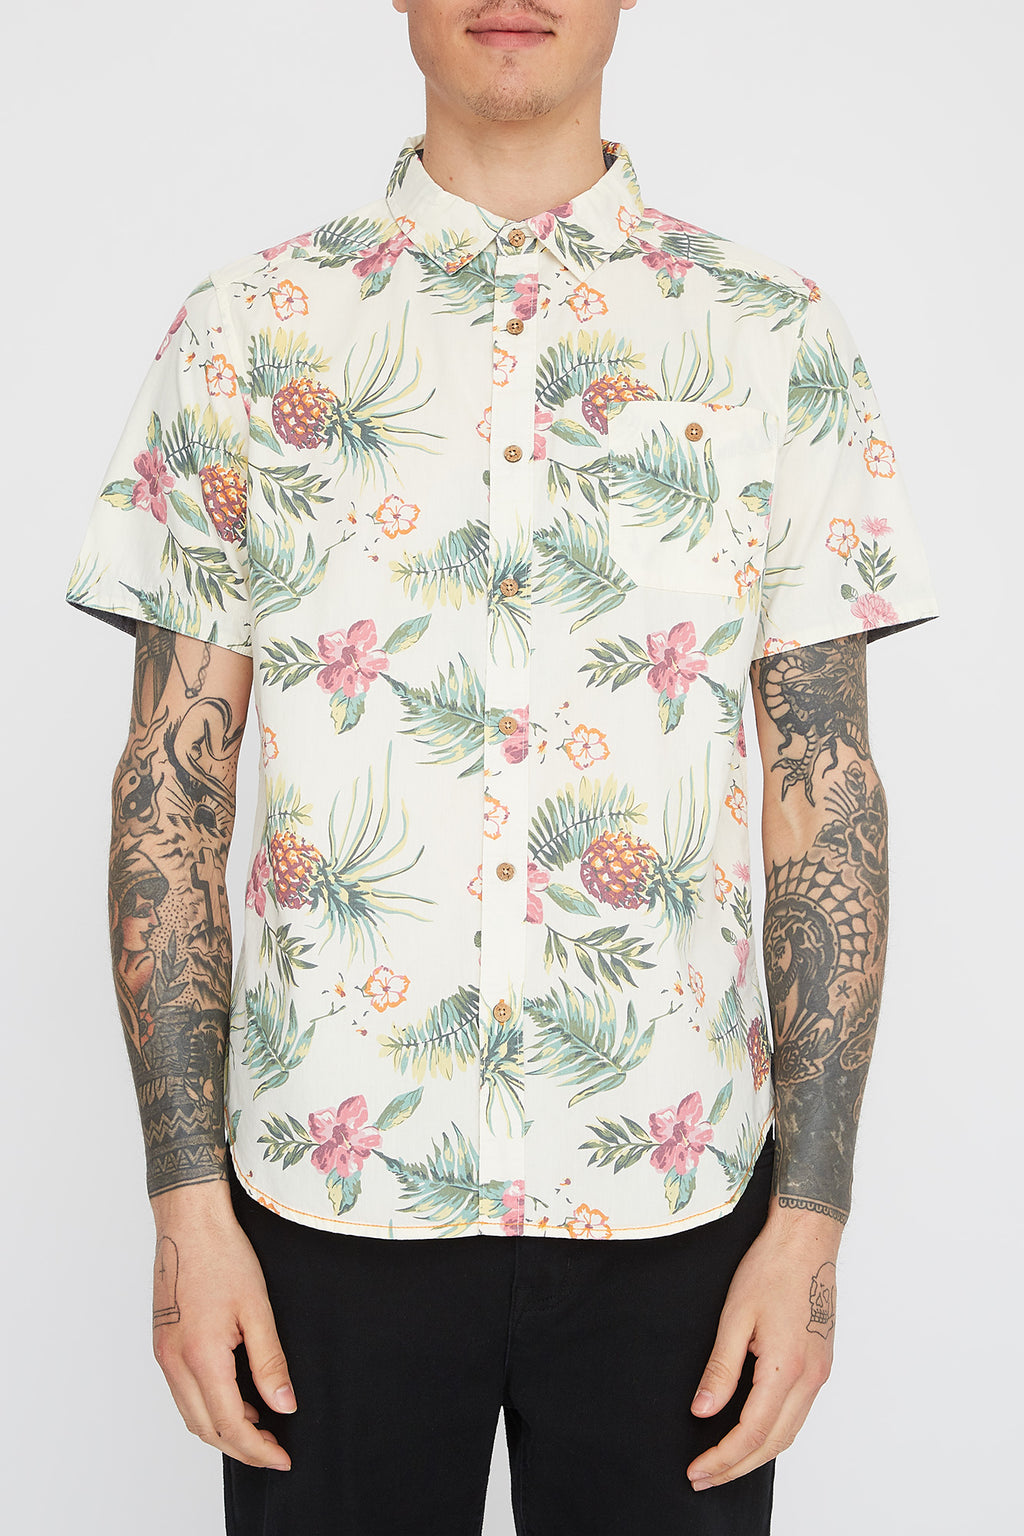 West49 Mens Pineapple Button Up Shirt